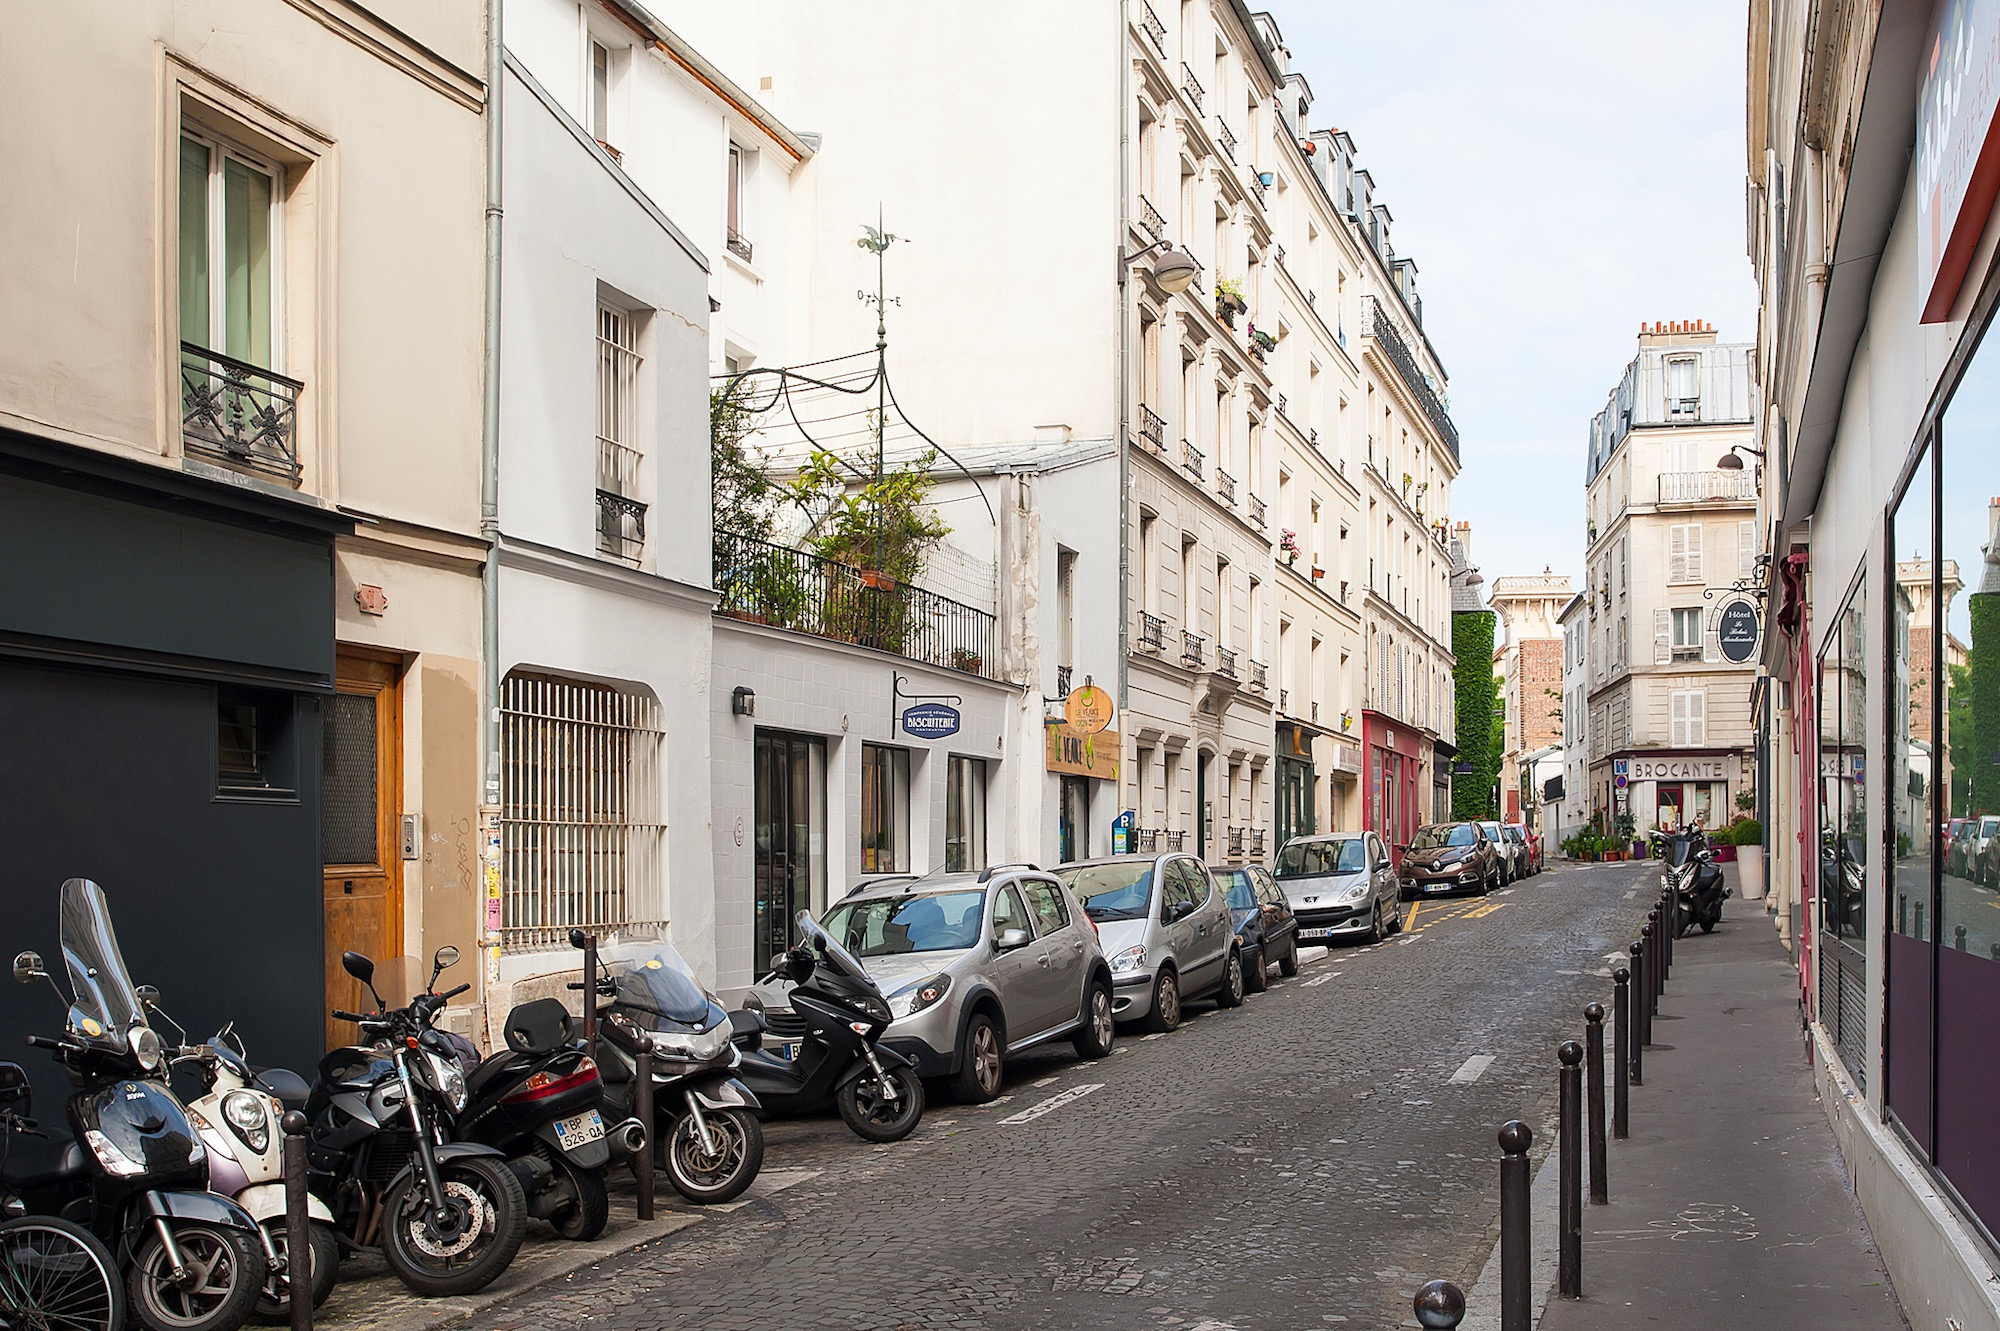 The cobblestone street of Montmartre where you'll find artisanal cobbler Atelier Constance.